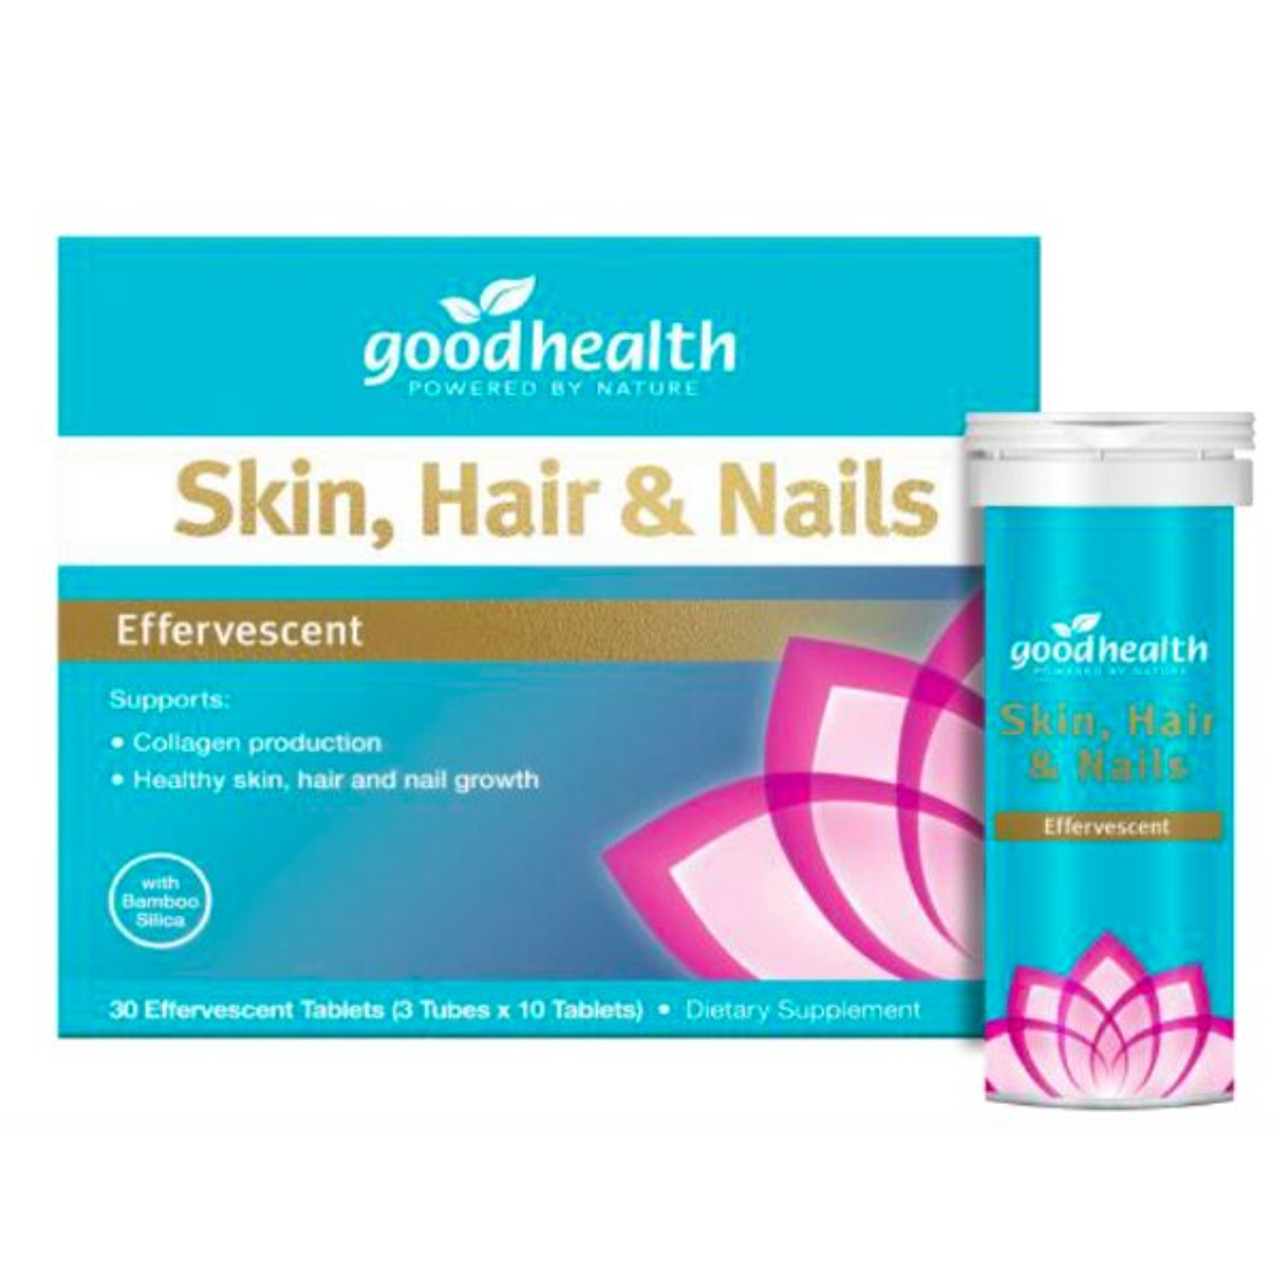 Good Health Skin, Hair and Nails - 30 Effervescent Tablets